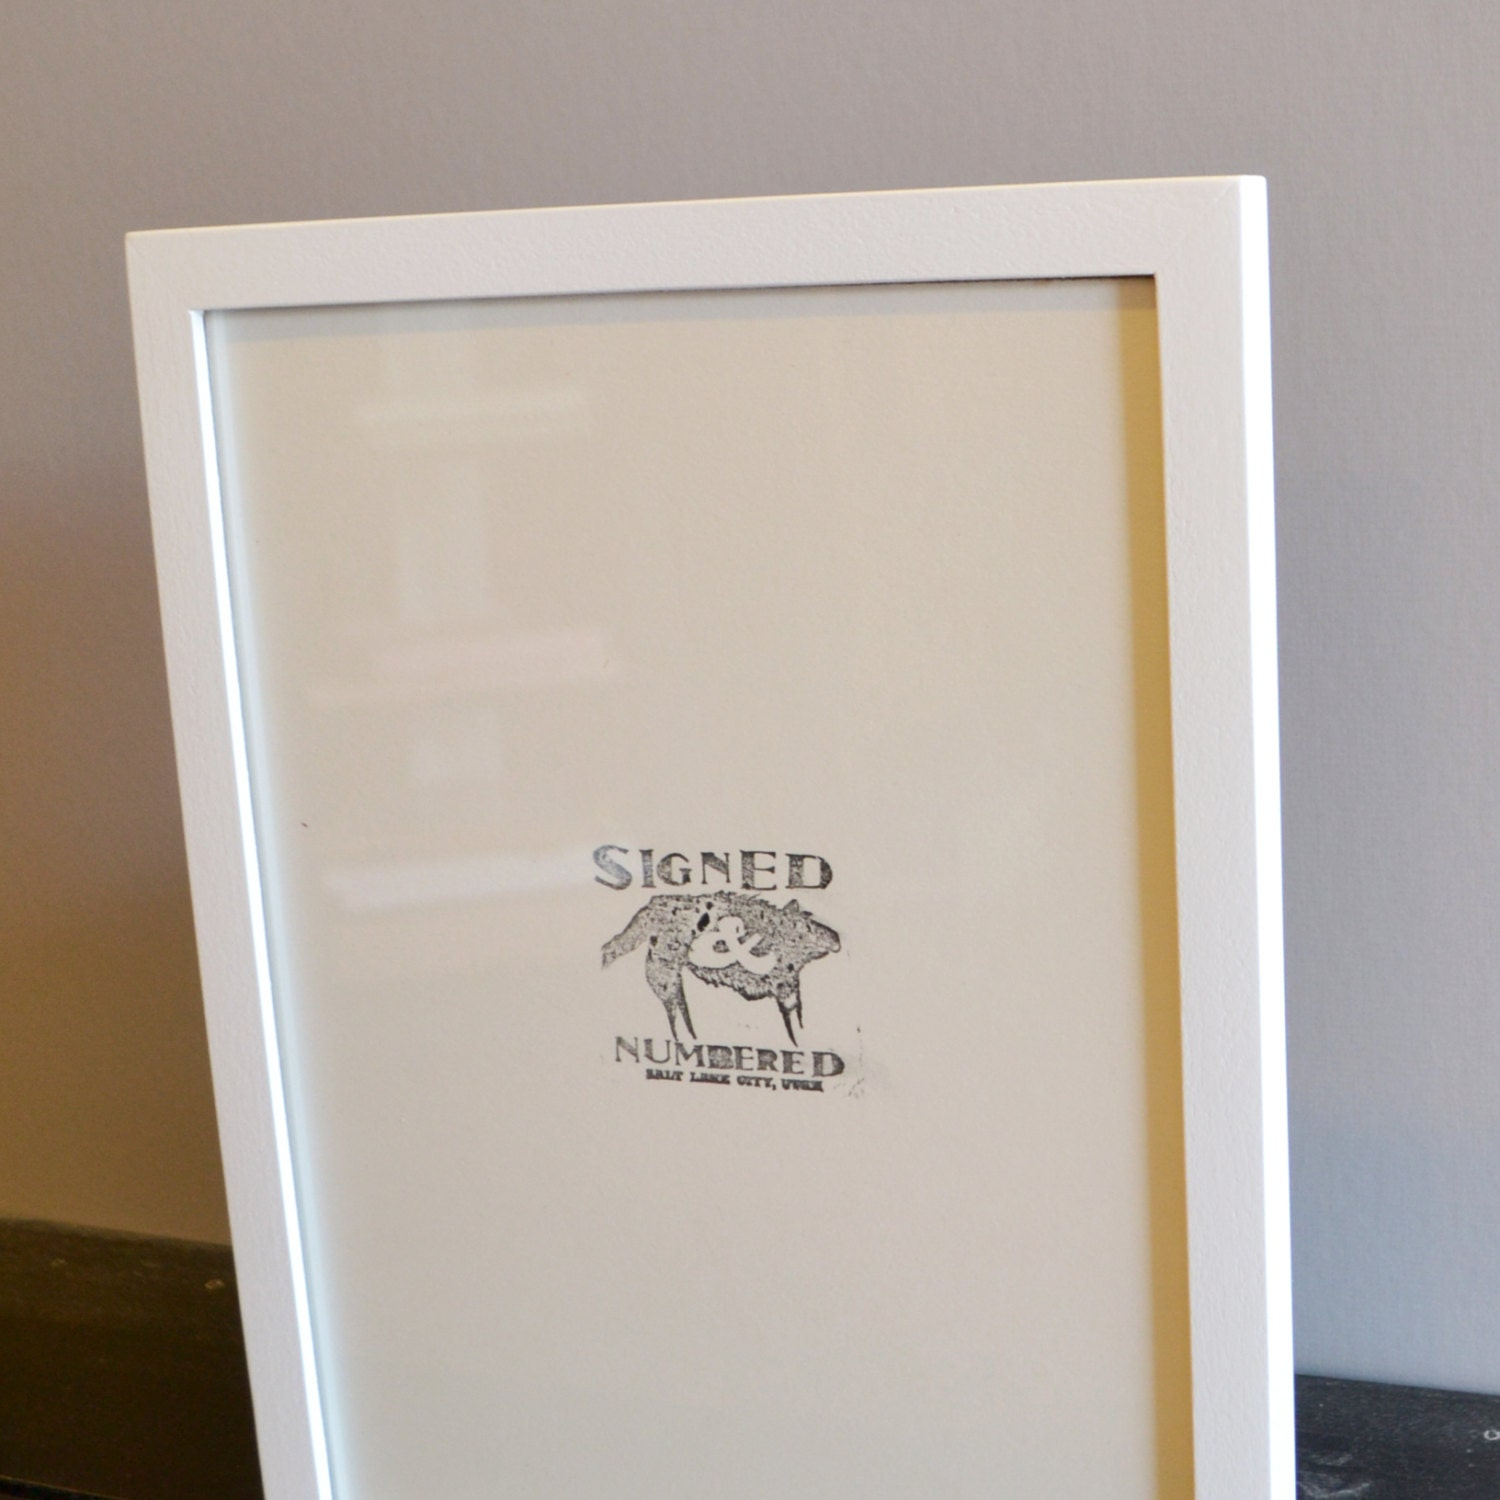 Perfect 11 Picture Frame Pictures - Framed Art Ideas - roadofriches.com